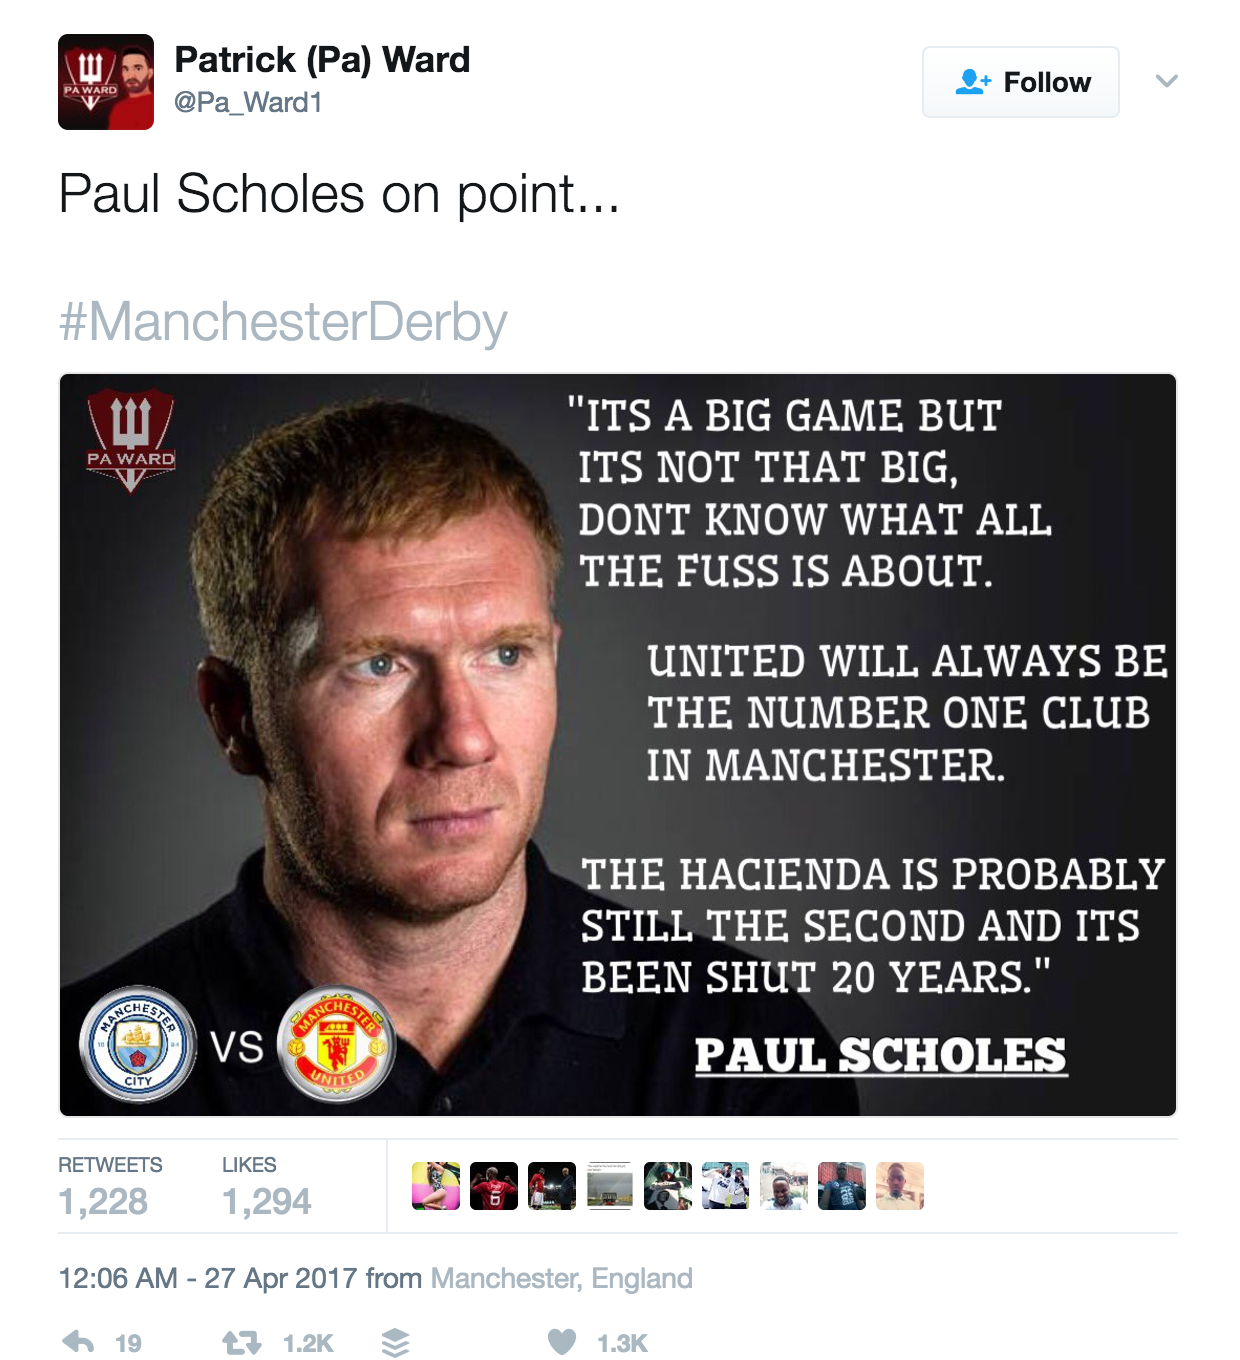 Yet again, thousands are being duped by *that* fake Paul Scholes